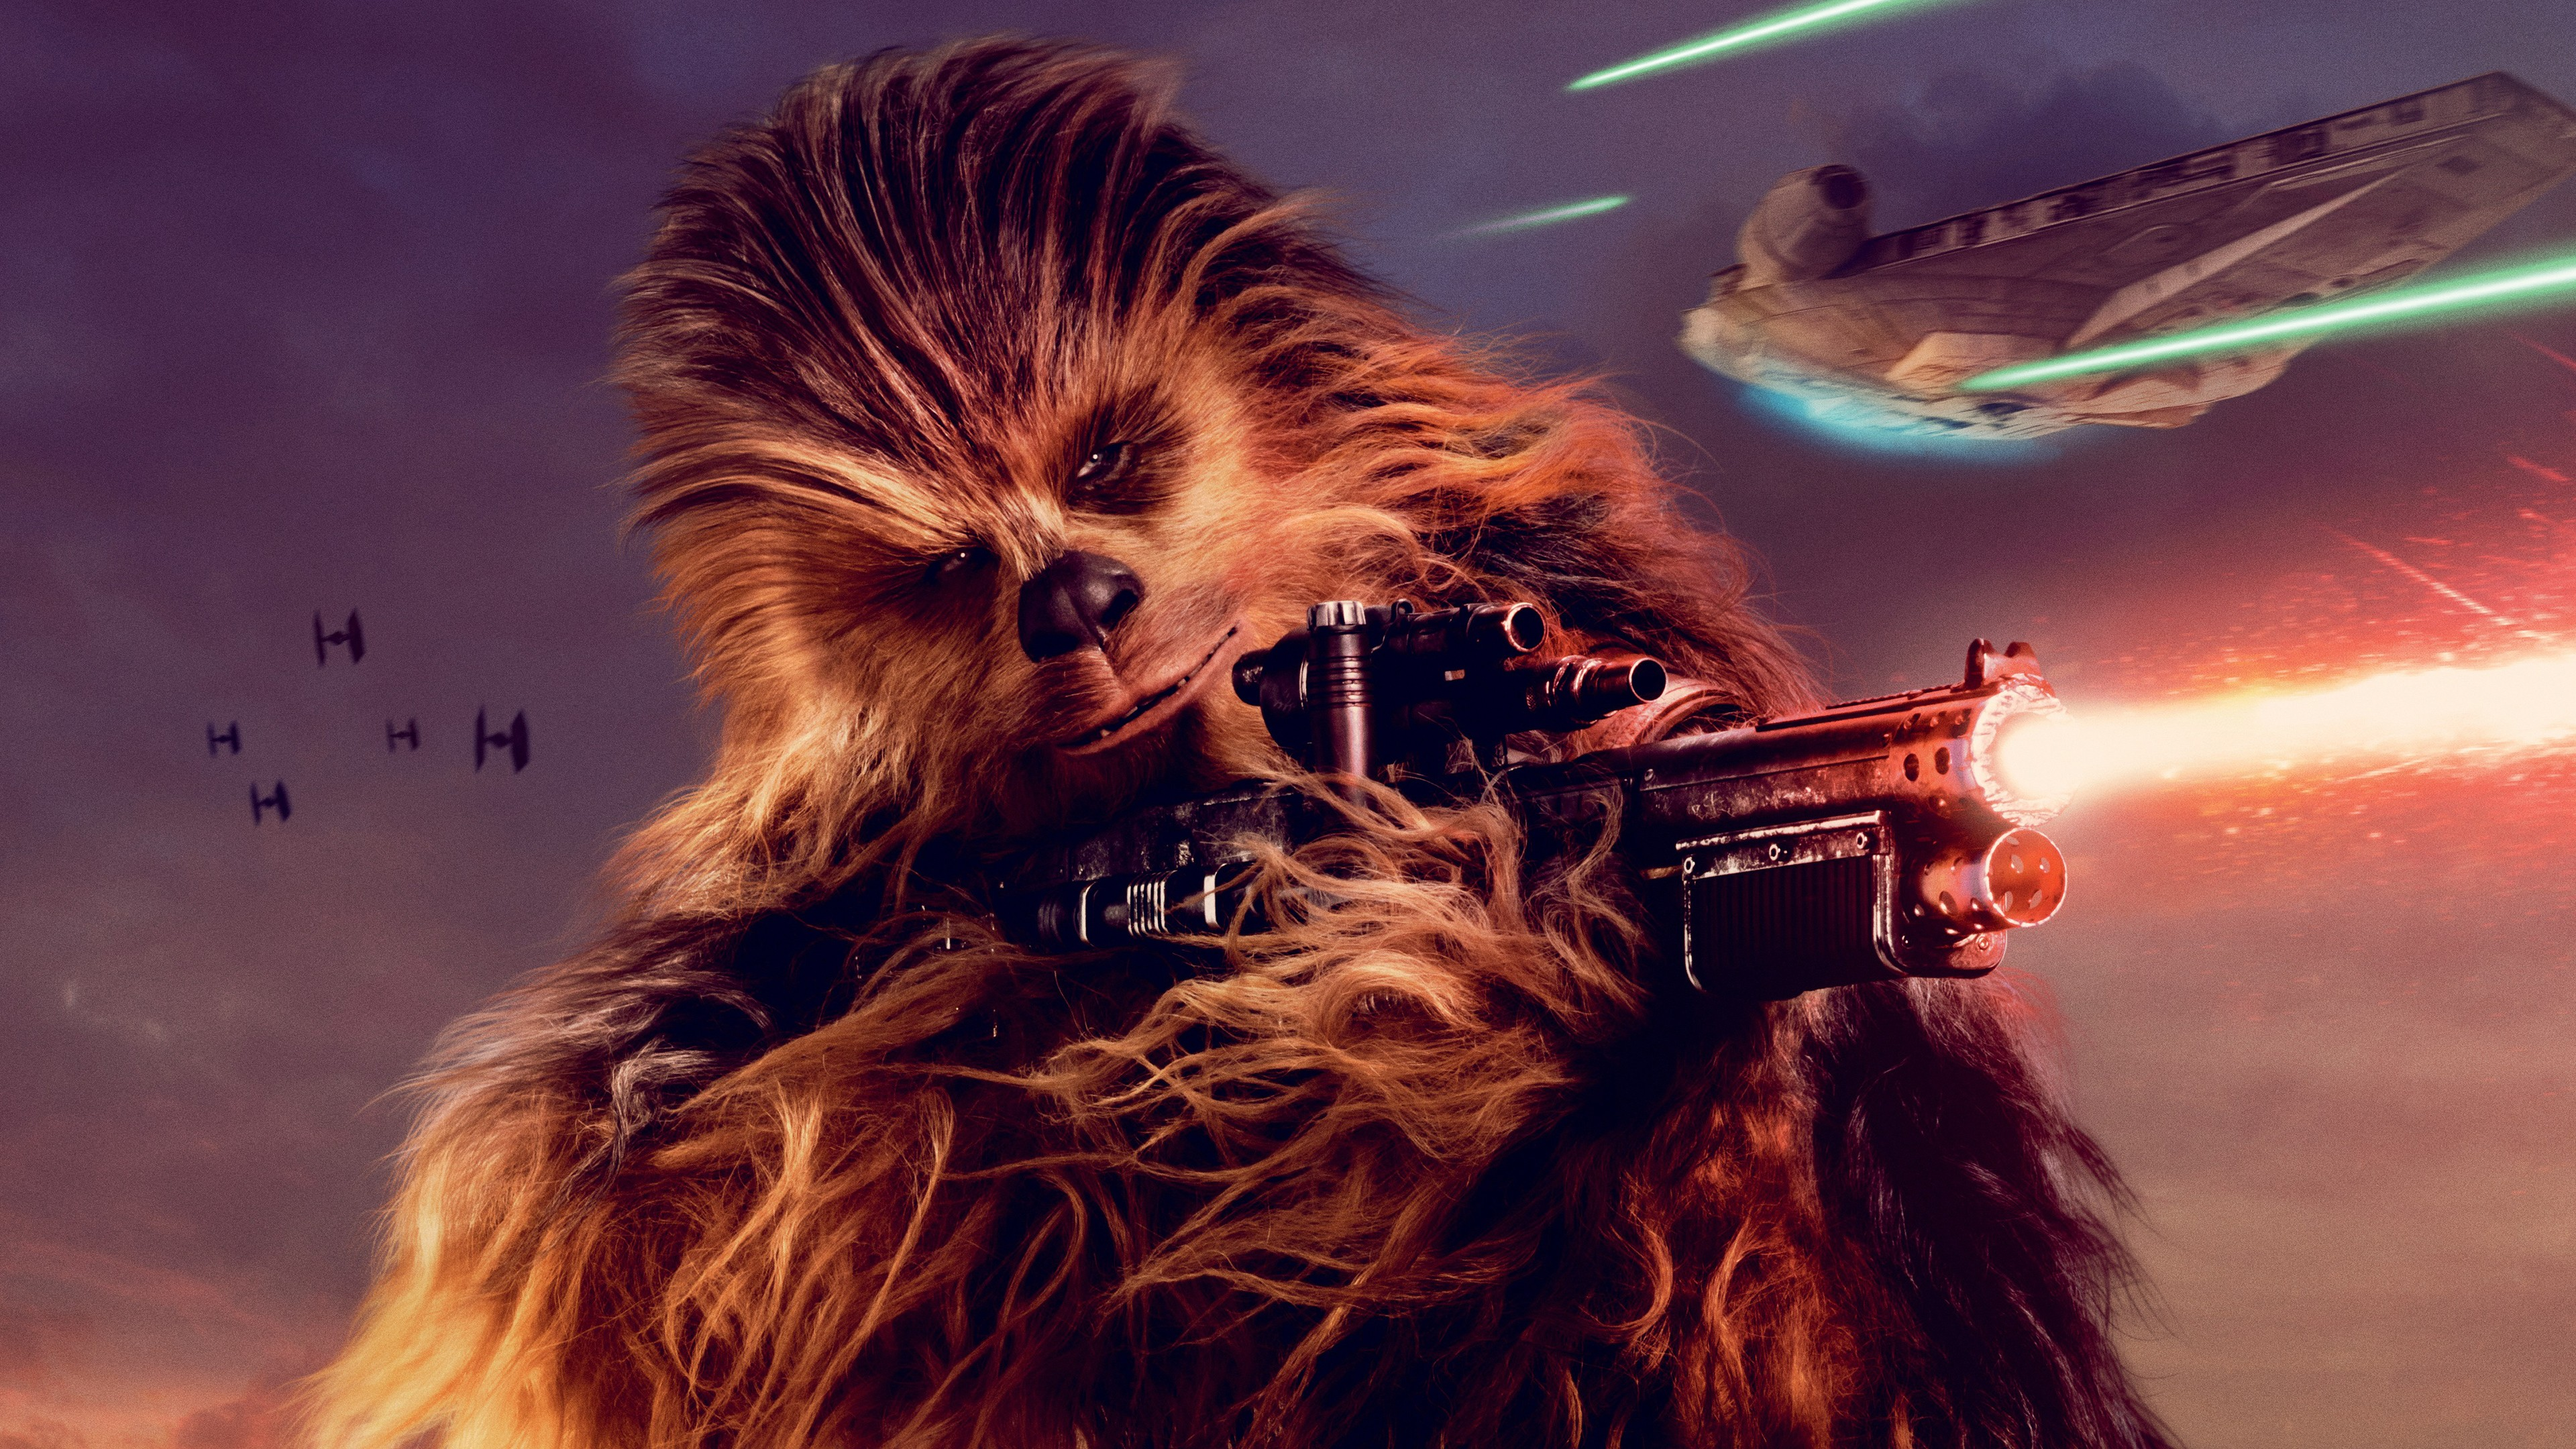 Vfx 3d Wallpaper Pro Chewbacca Solo A Star Wars Story 4k Wallpapers Hd